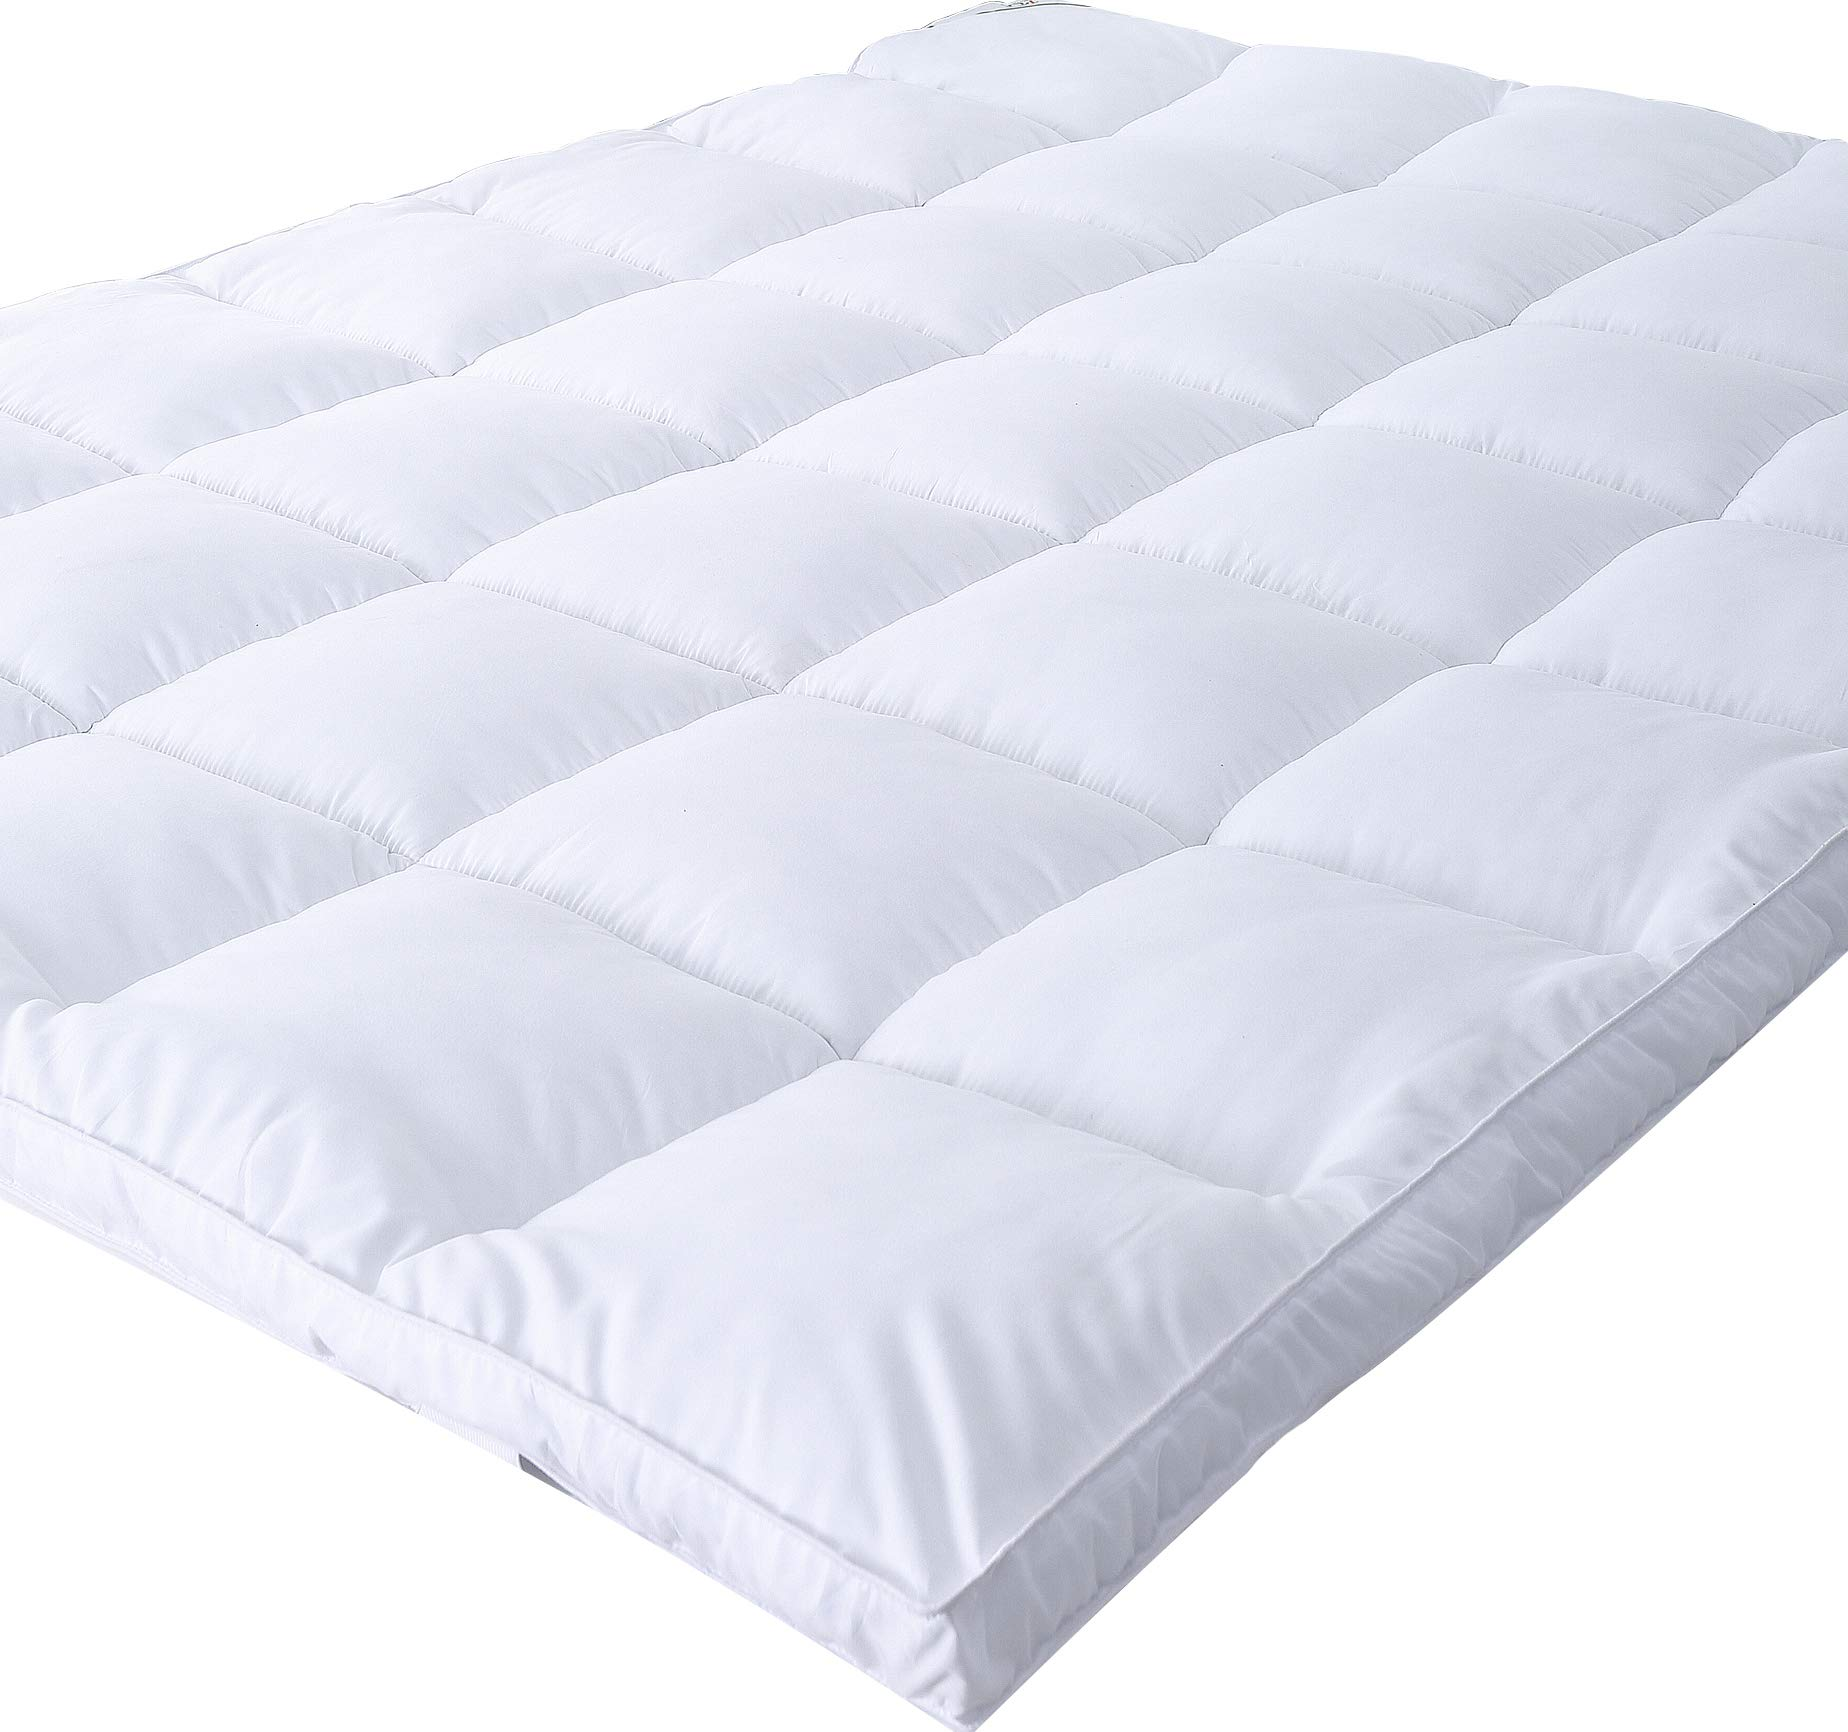 Naluka Mattress Topper Full Size, Down Alternative - Microplush Mattress Pad for All Seasons Quilted Stretch Pillow Top 2 Inch Thick (54''x75'')